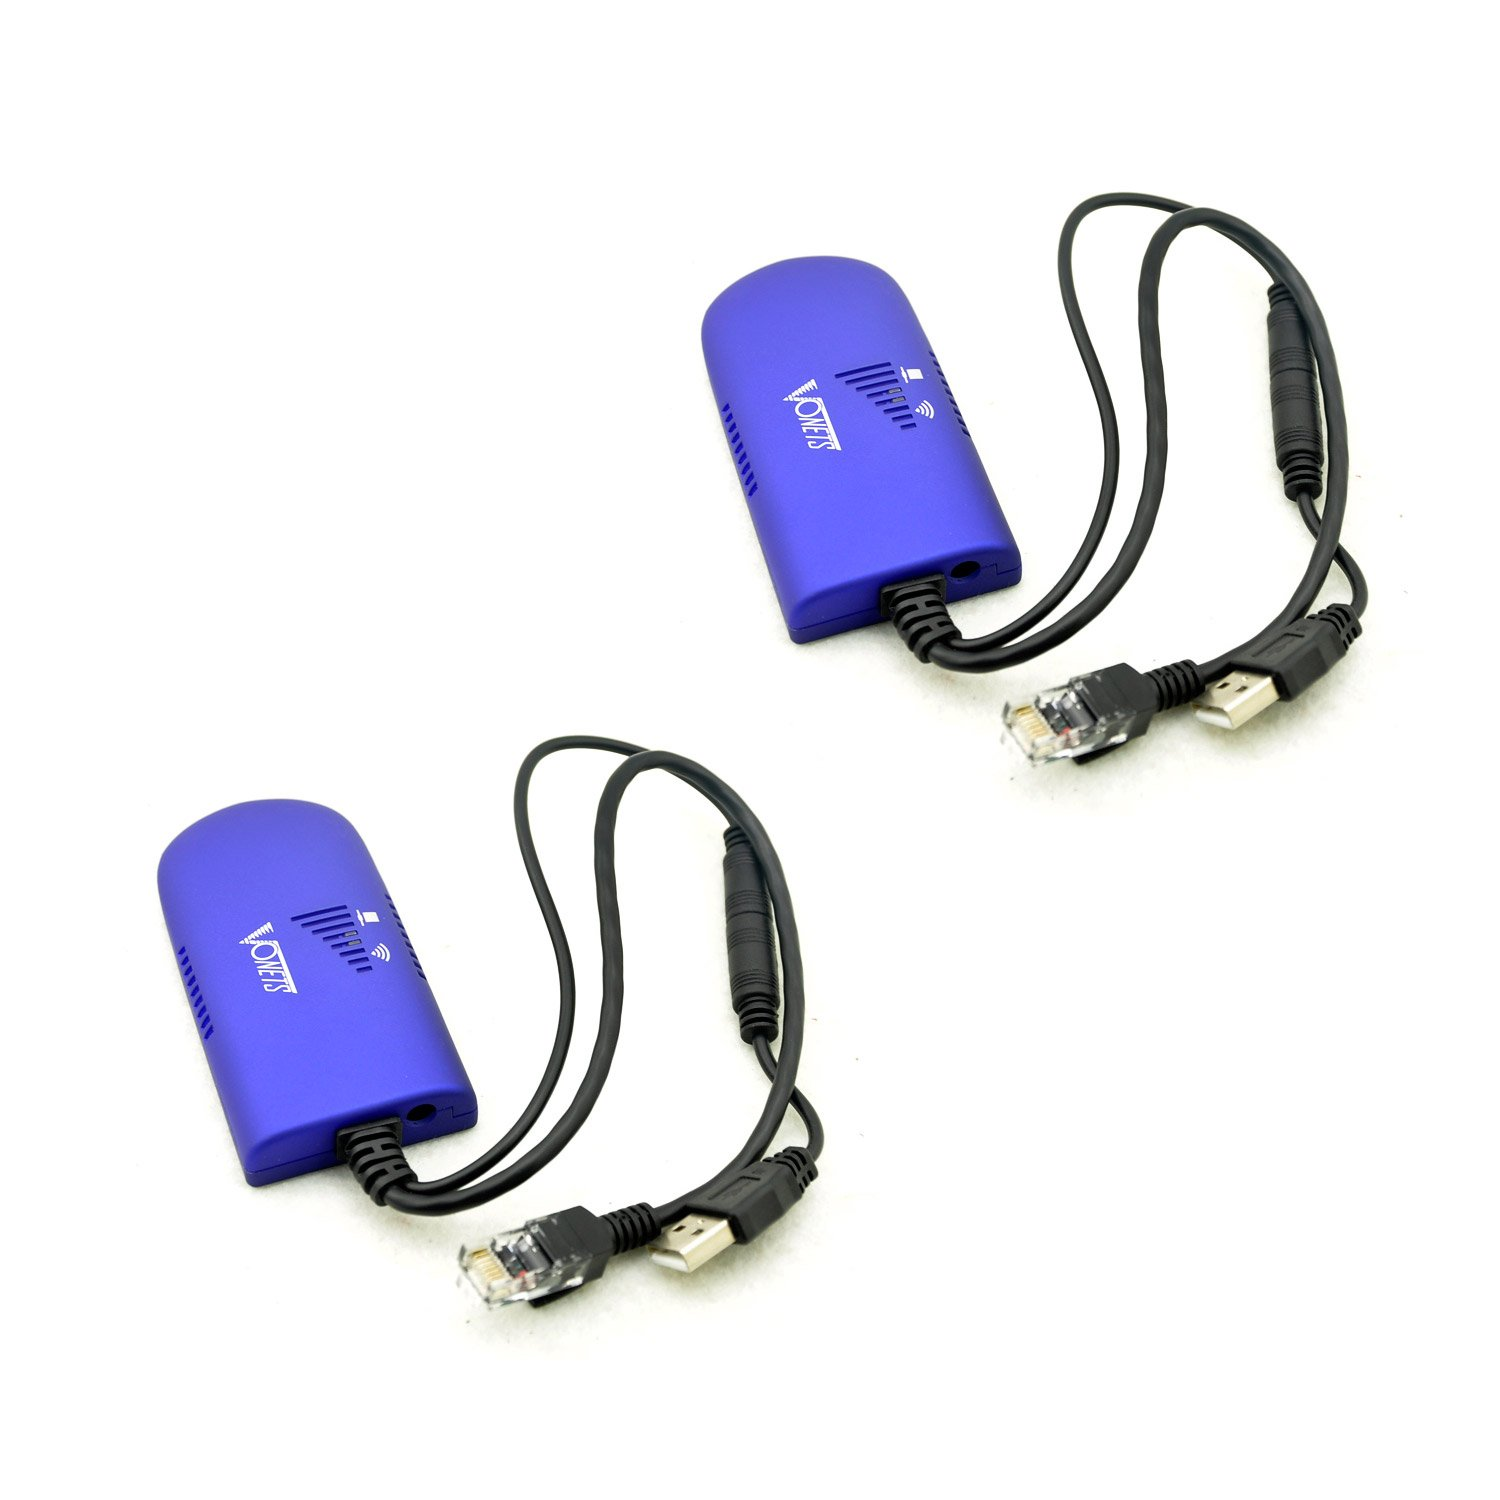 [2 Pack ] Upgrade VONETS VAP11G-300 Wireless Wifi Bridge Dongle Wireless Access Points AP for Dreambox Xbox PS3 Network Printer Router ADSL IP Camera (Support Microsoft Windows Linux MAC OS)